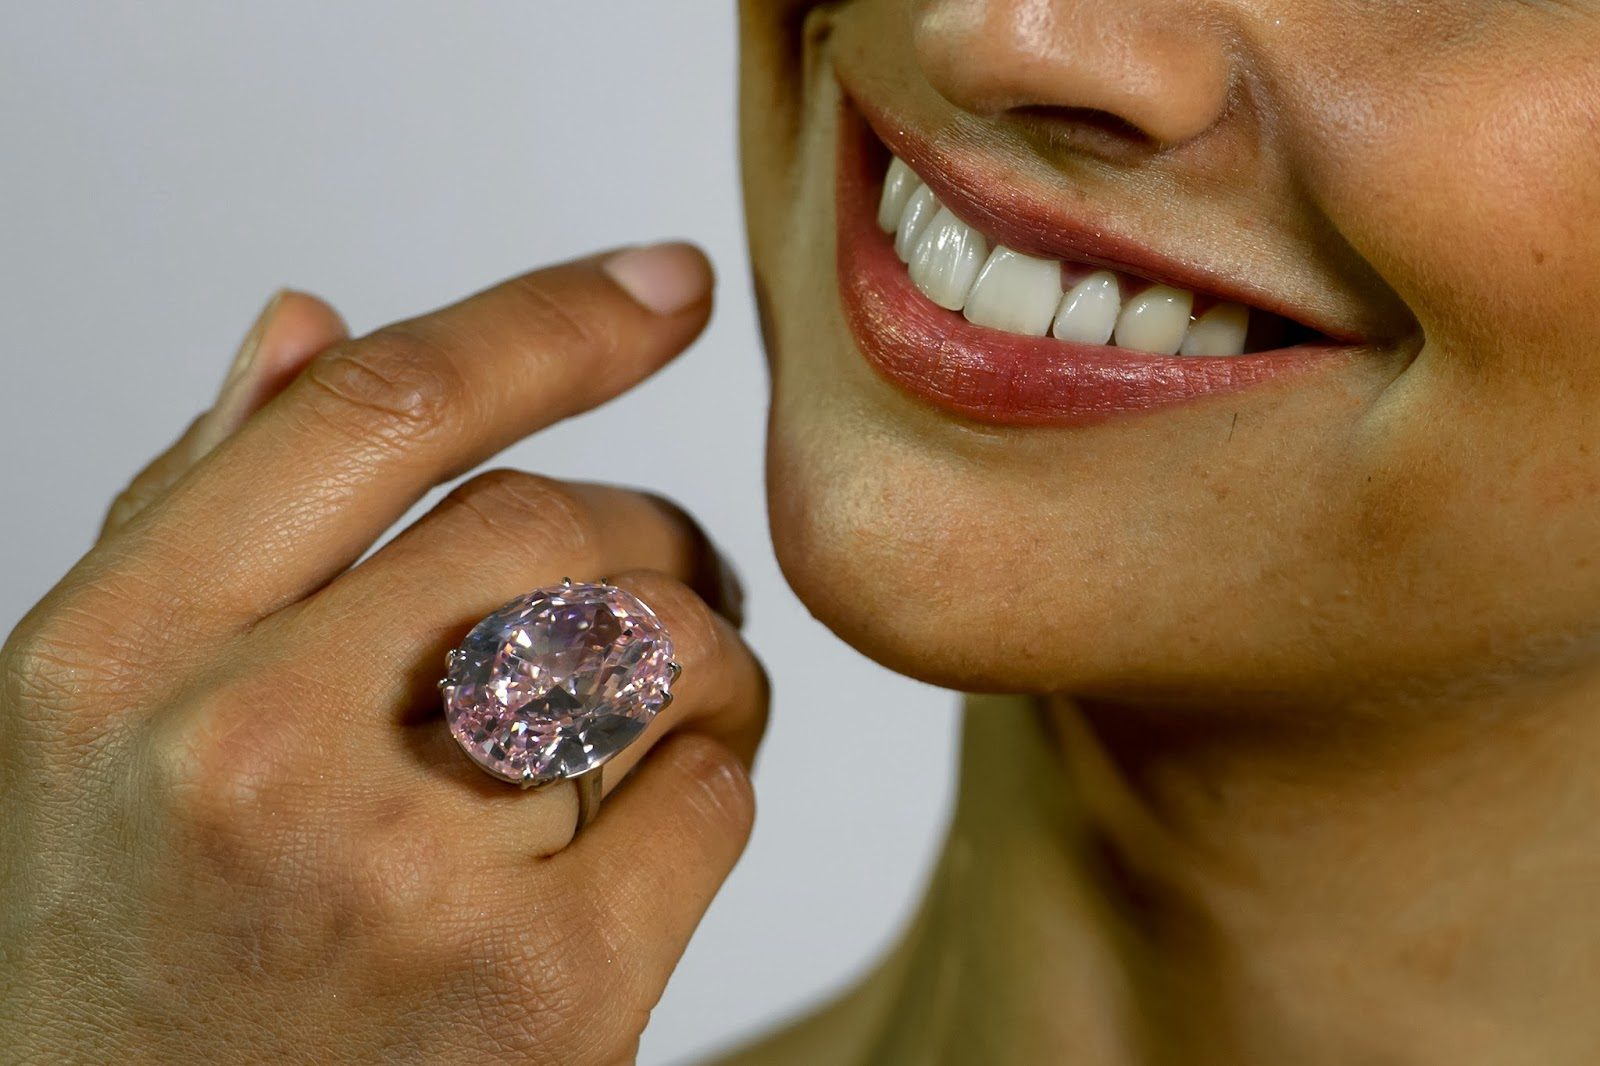 59.6-carat, Auction, Business, Diamond, Diamond Auction, Economy, Geneva, Model, Most Expensive, News, Oval-cut, Pink Diamond, Pink Panther, Pink Star, Ring, Sotheby, Stone, Swiss, World Record,